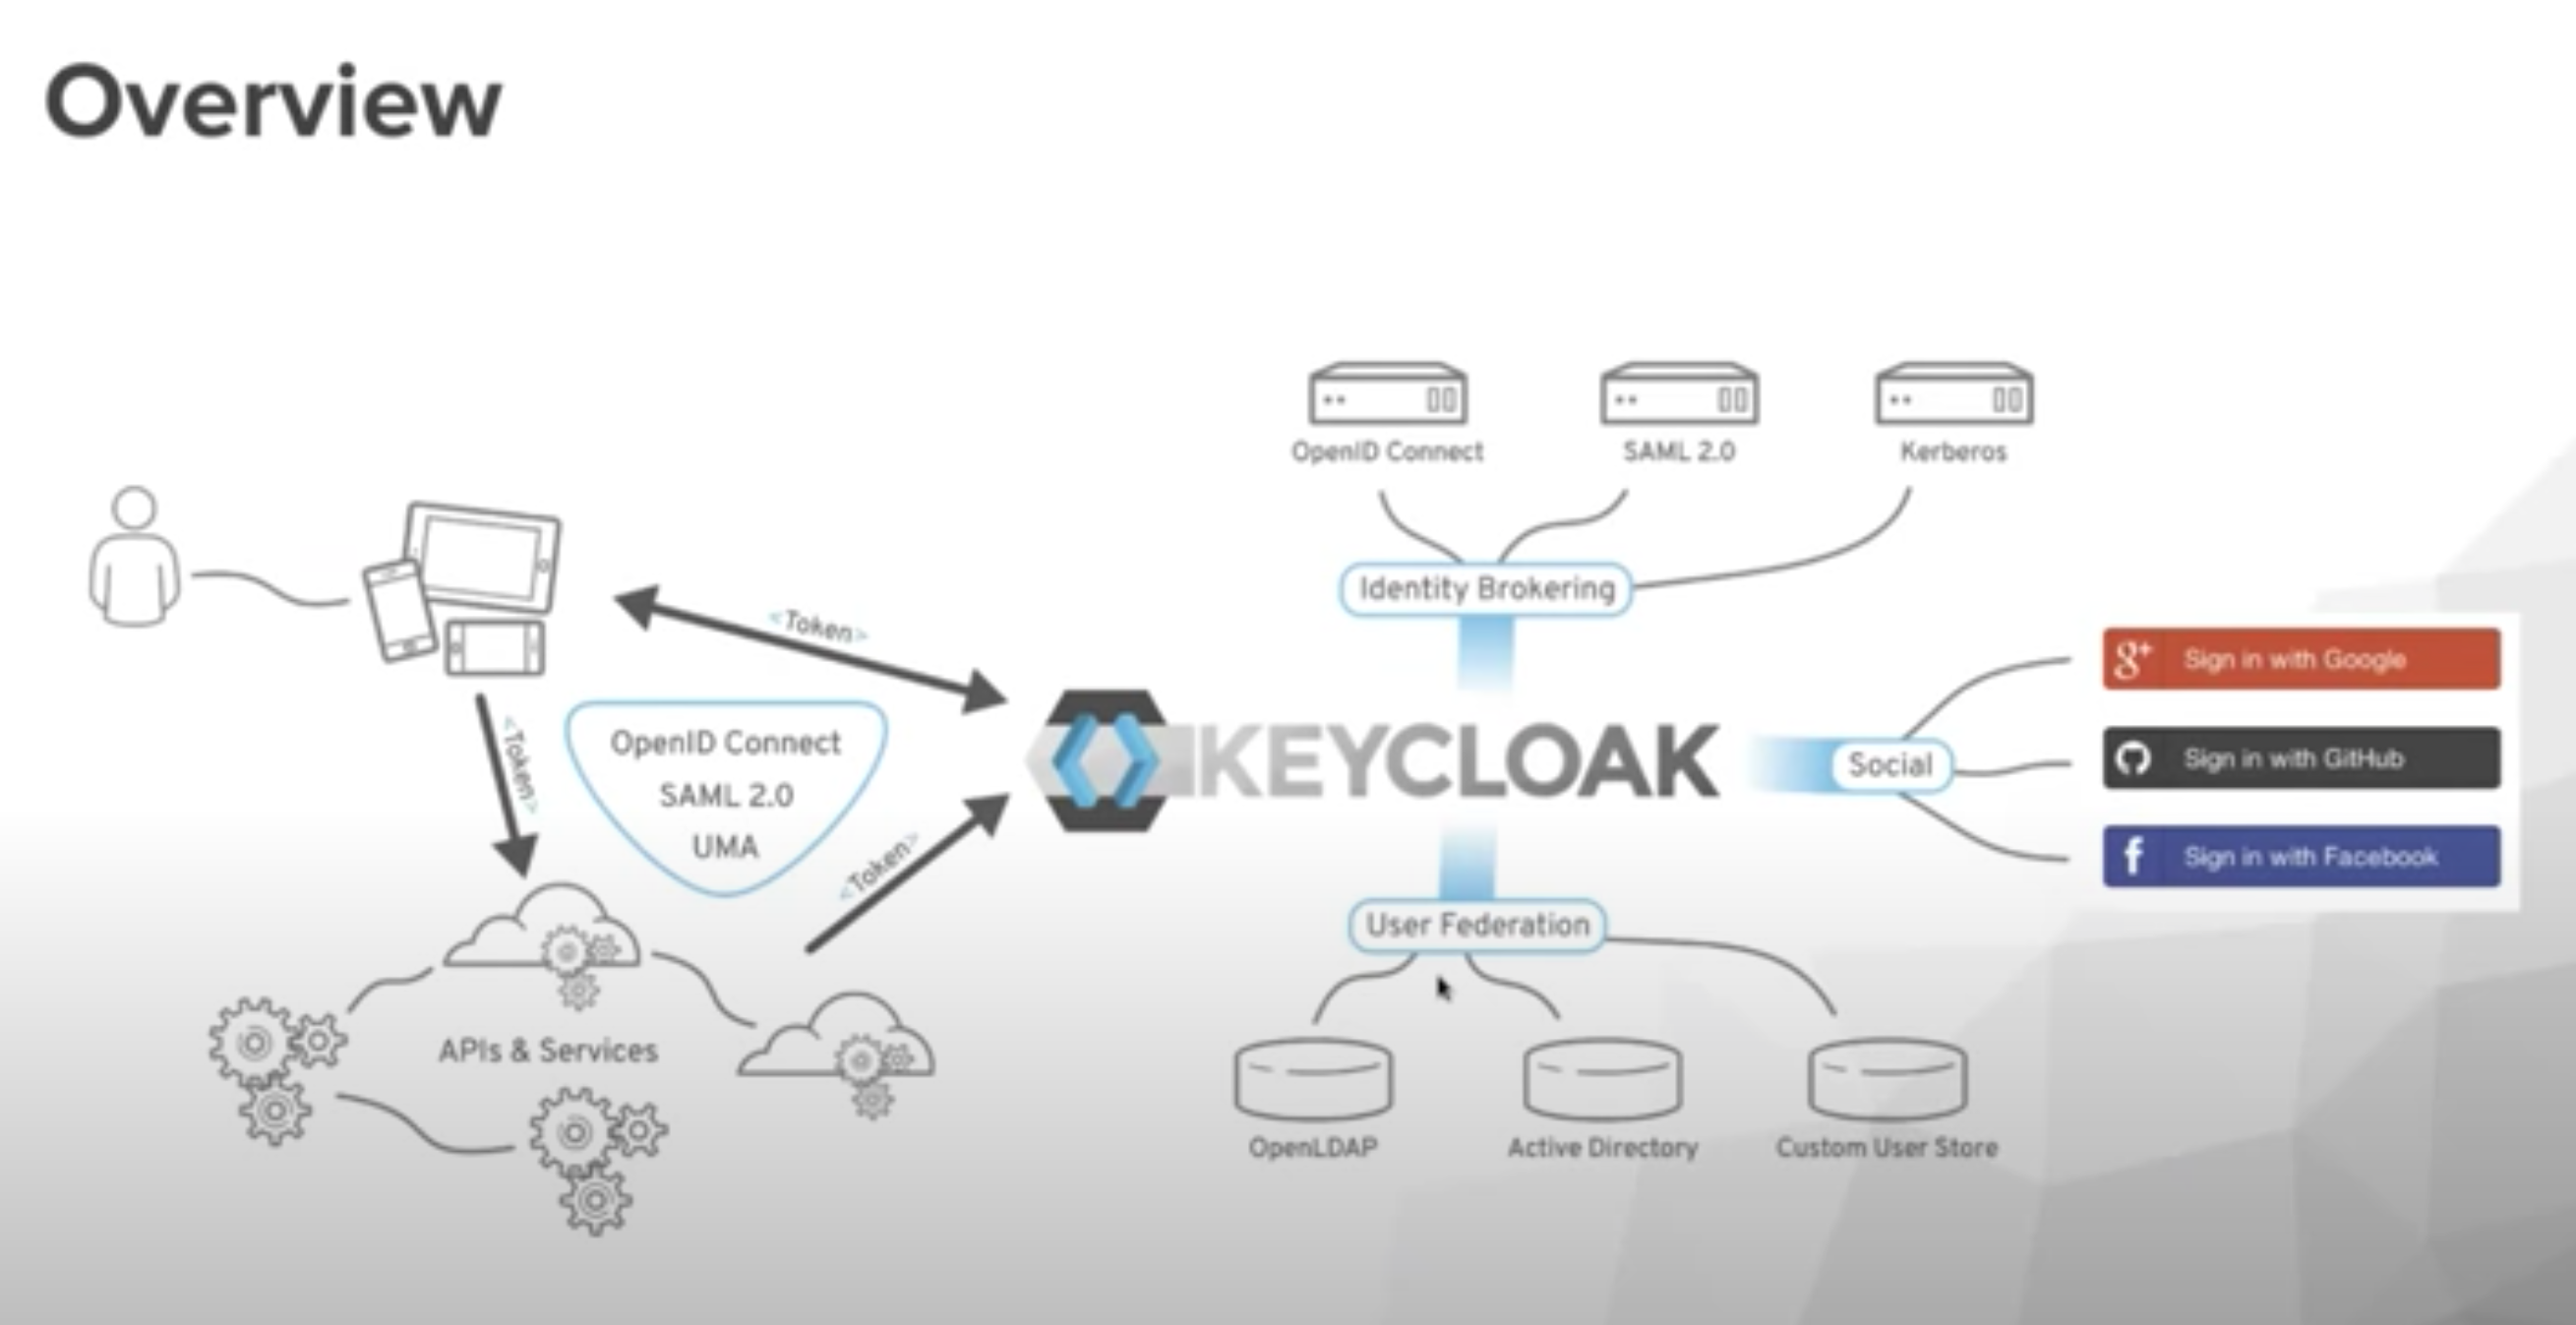 A deep dive into Keycloak